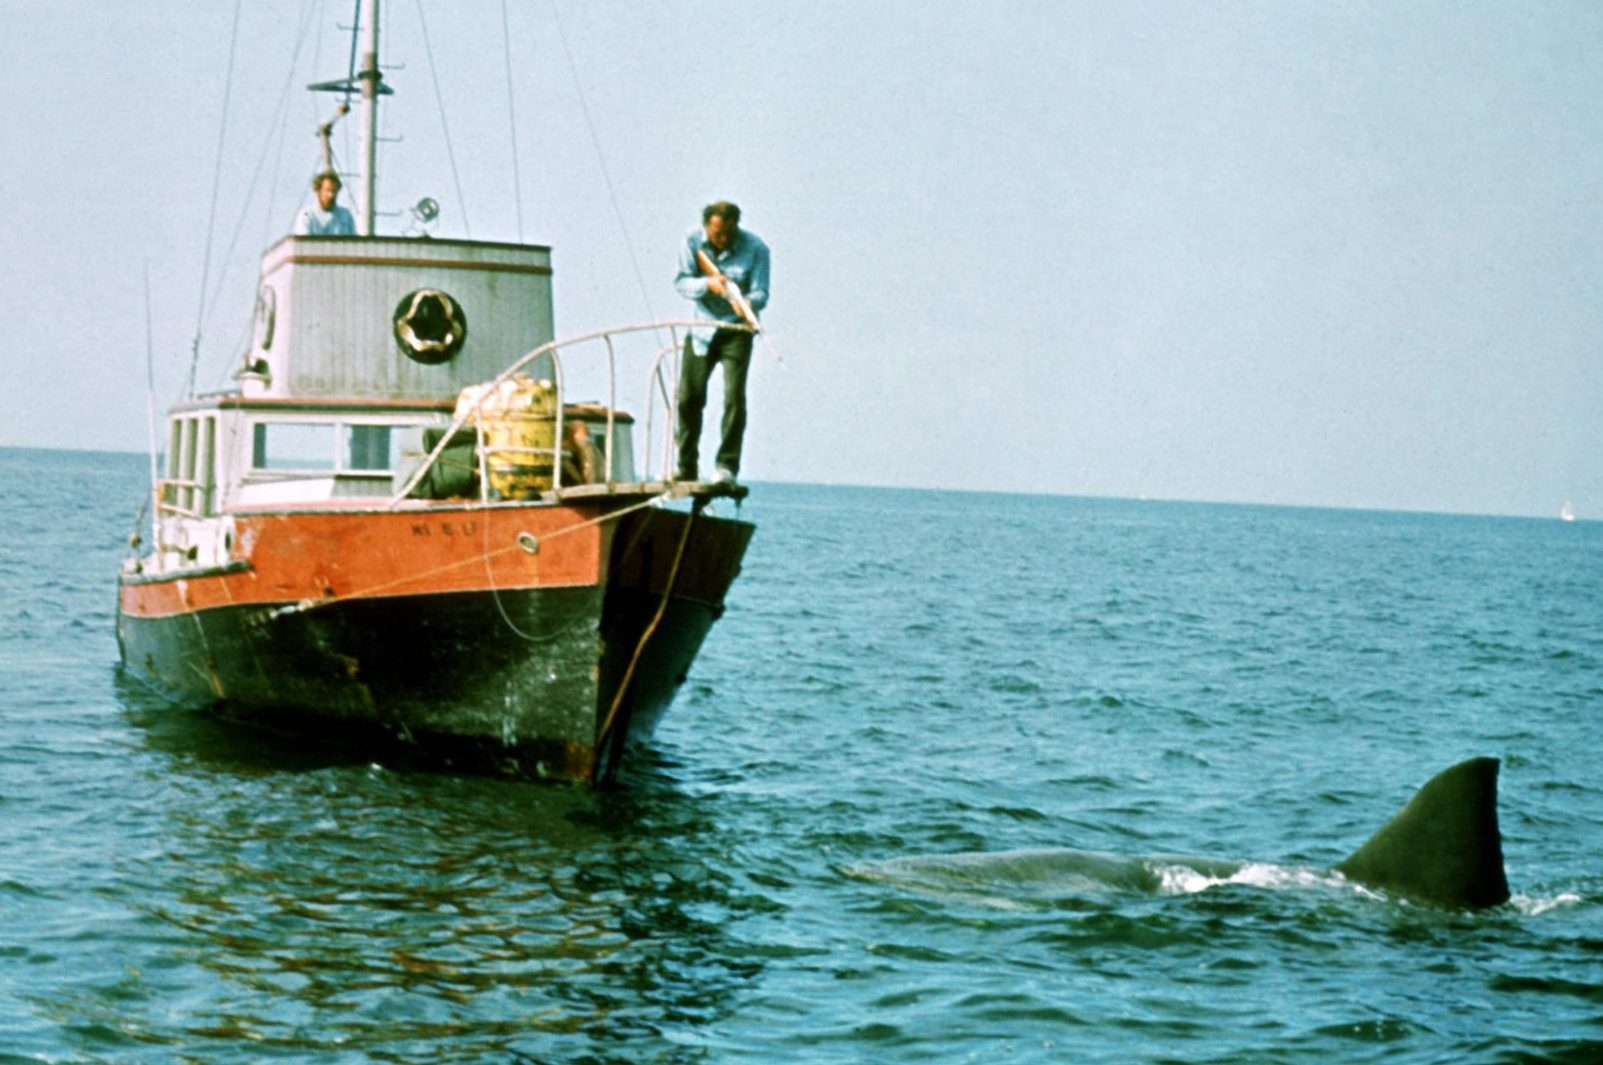 jaws e1615807140937 27 Things You Didn't Know About Jaws